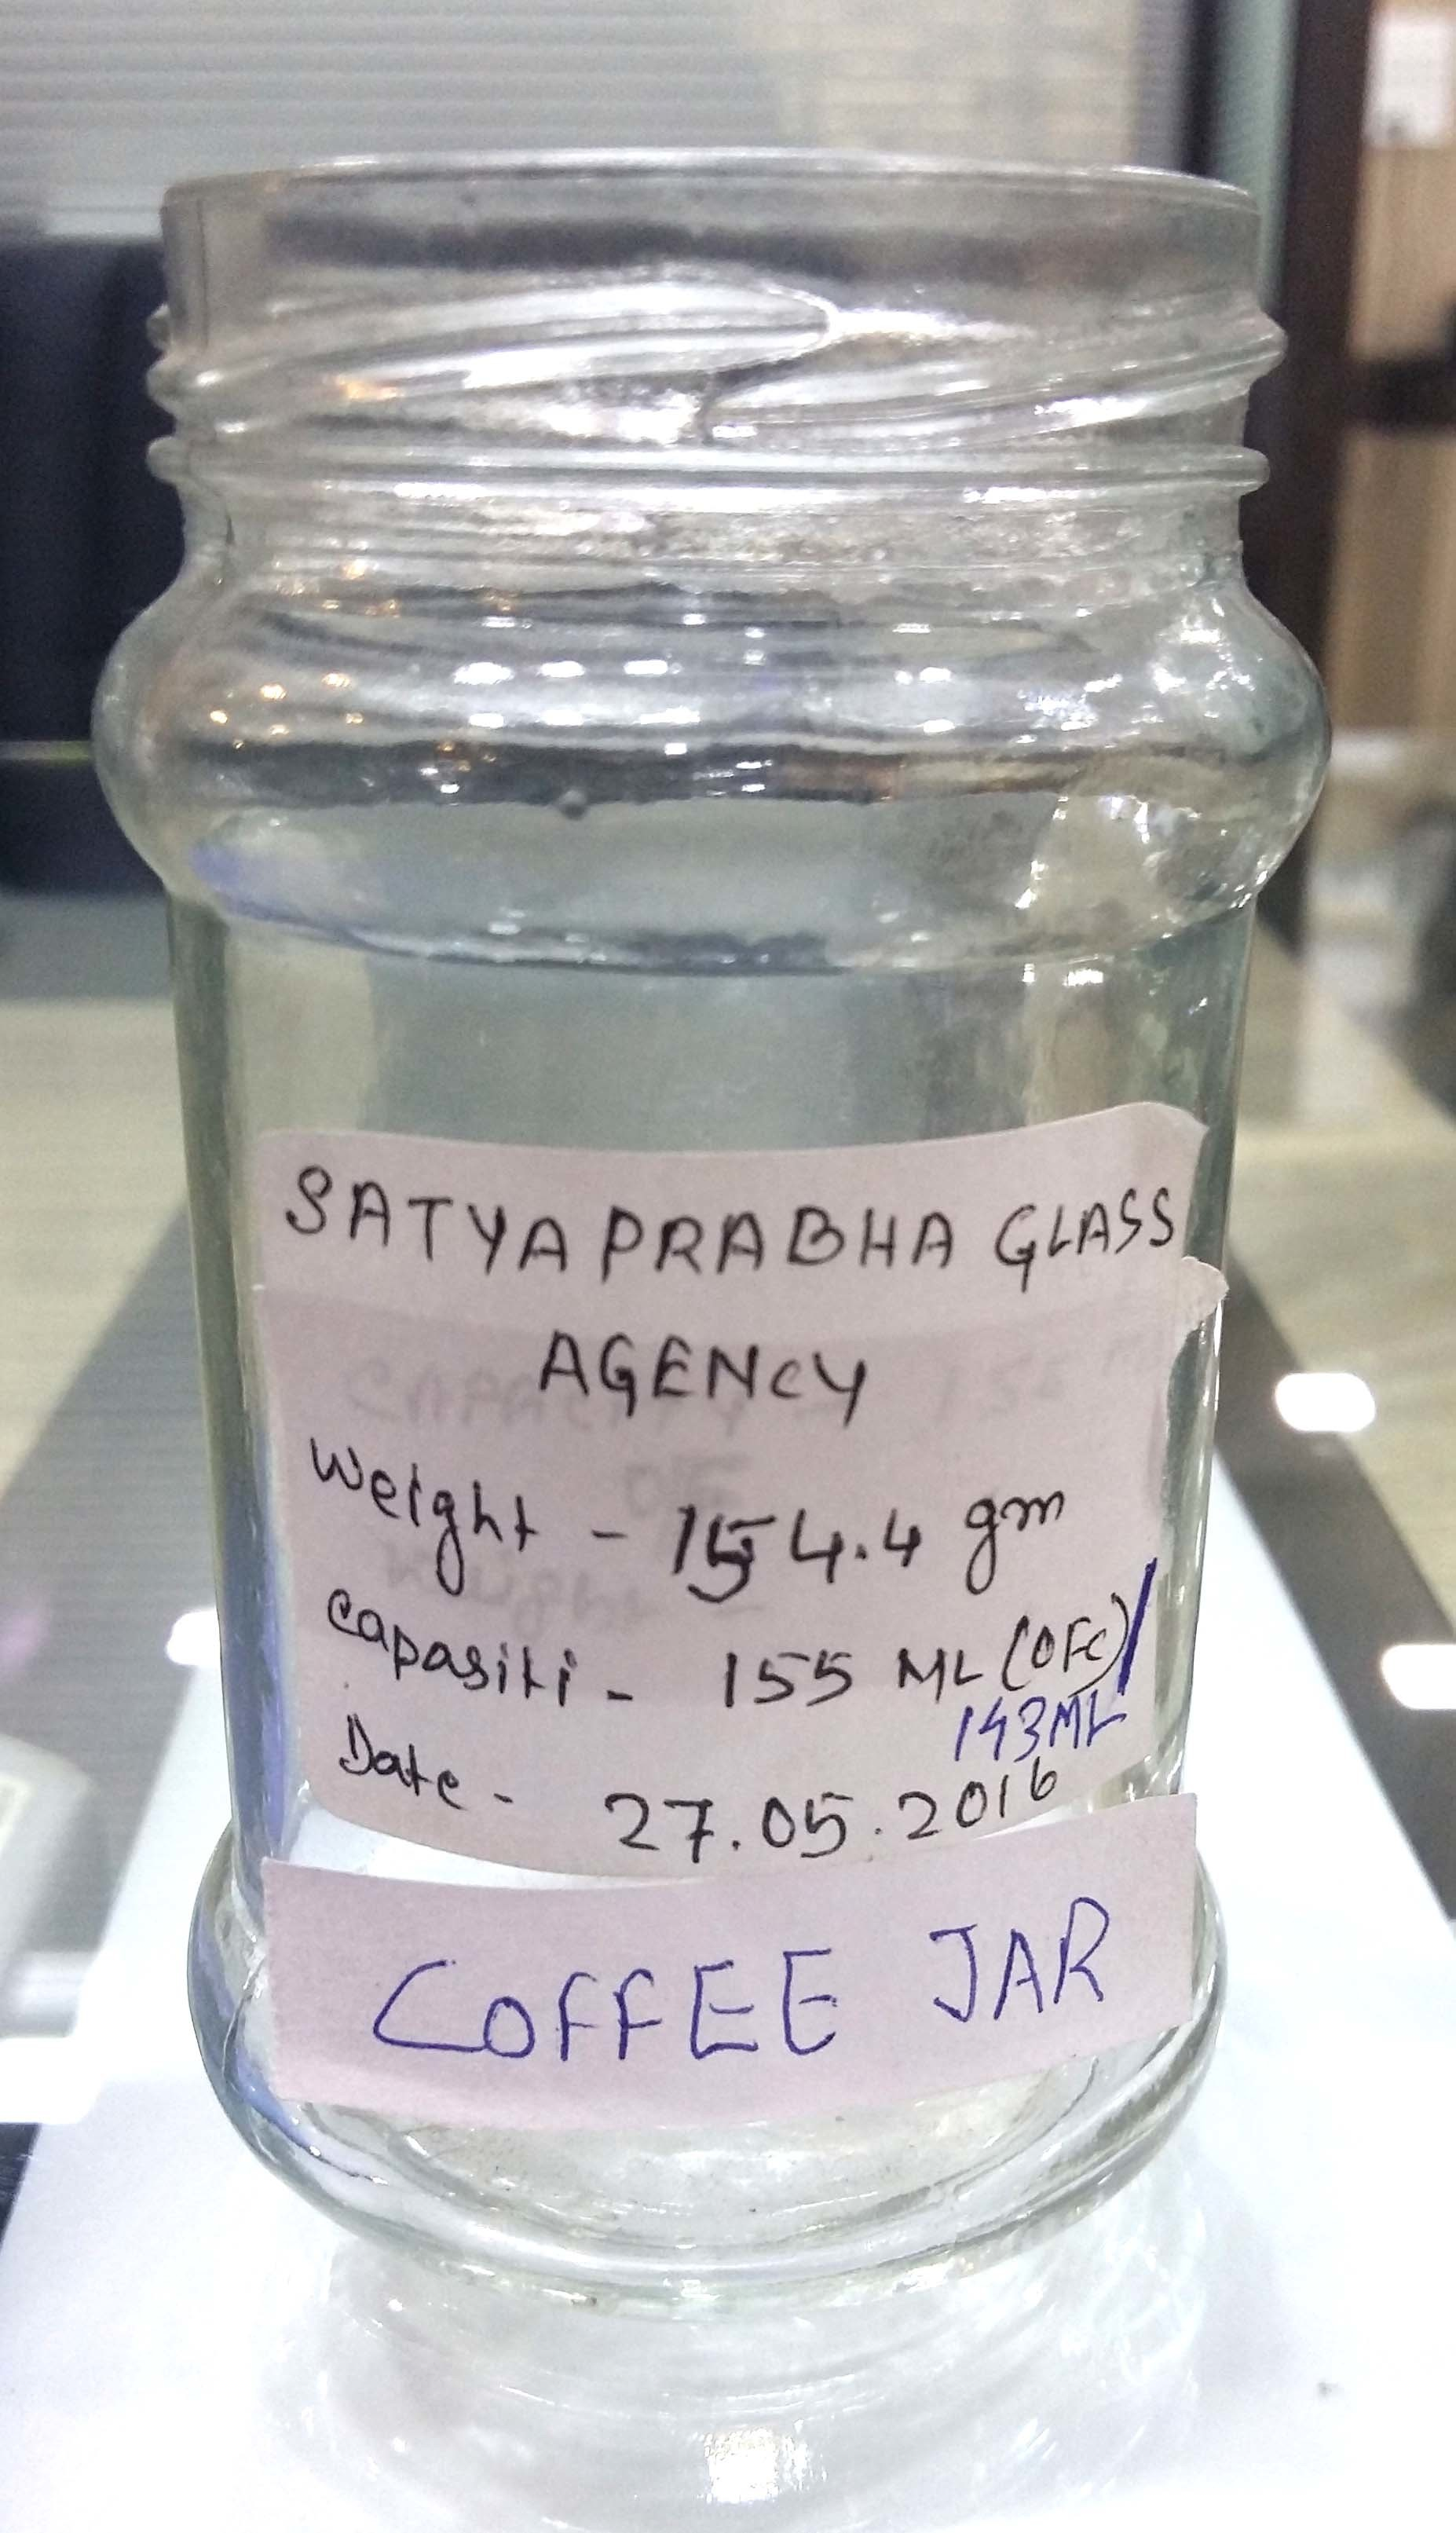 150 GM COFFEE JAR